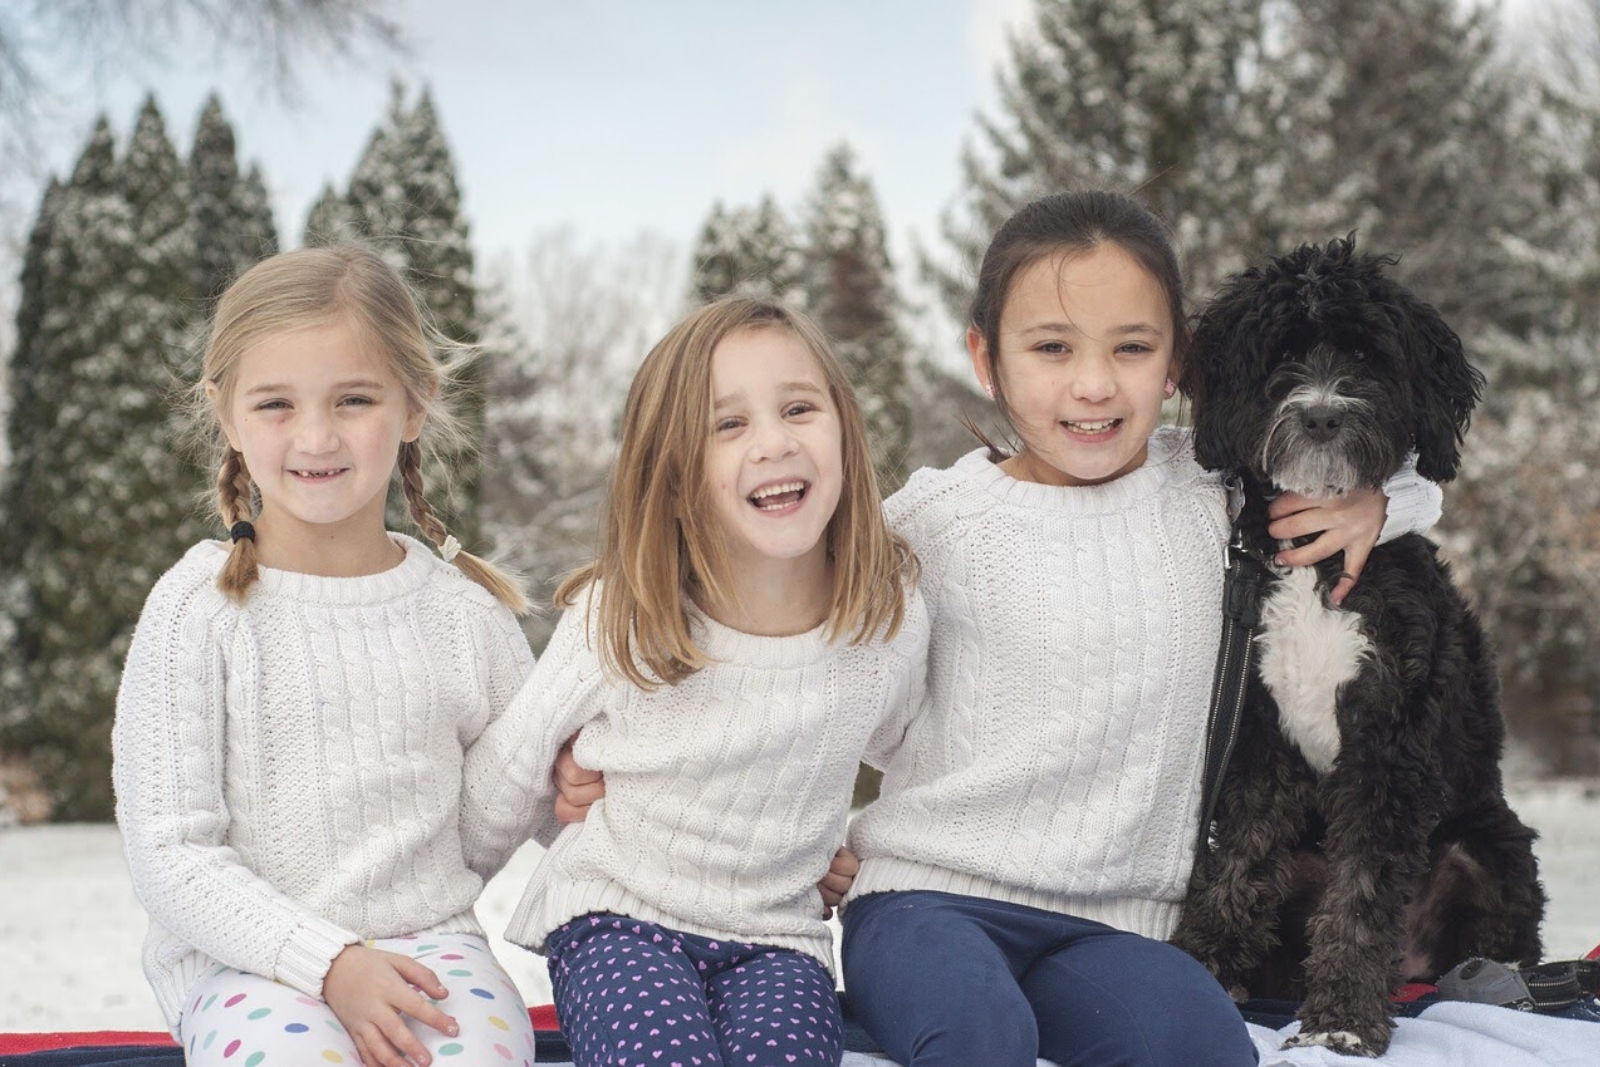 Kids and Dog | 8 Important Ways Of Preparing Pets For a Baby's Arrival